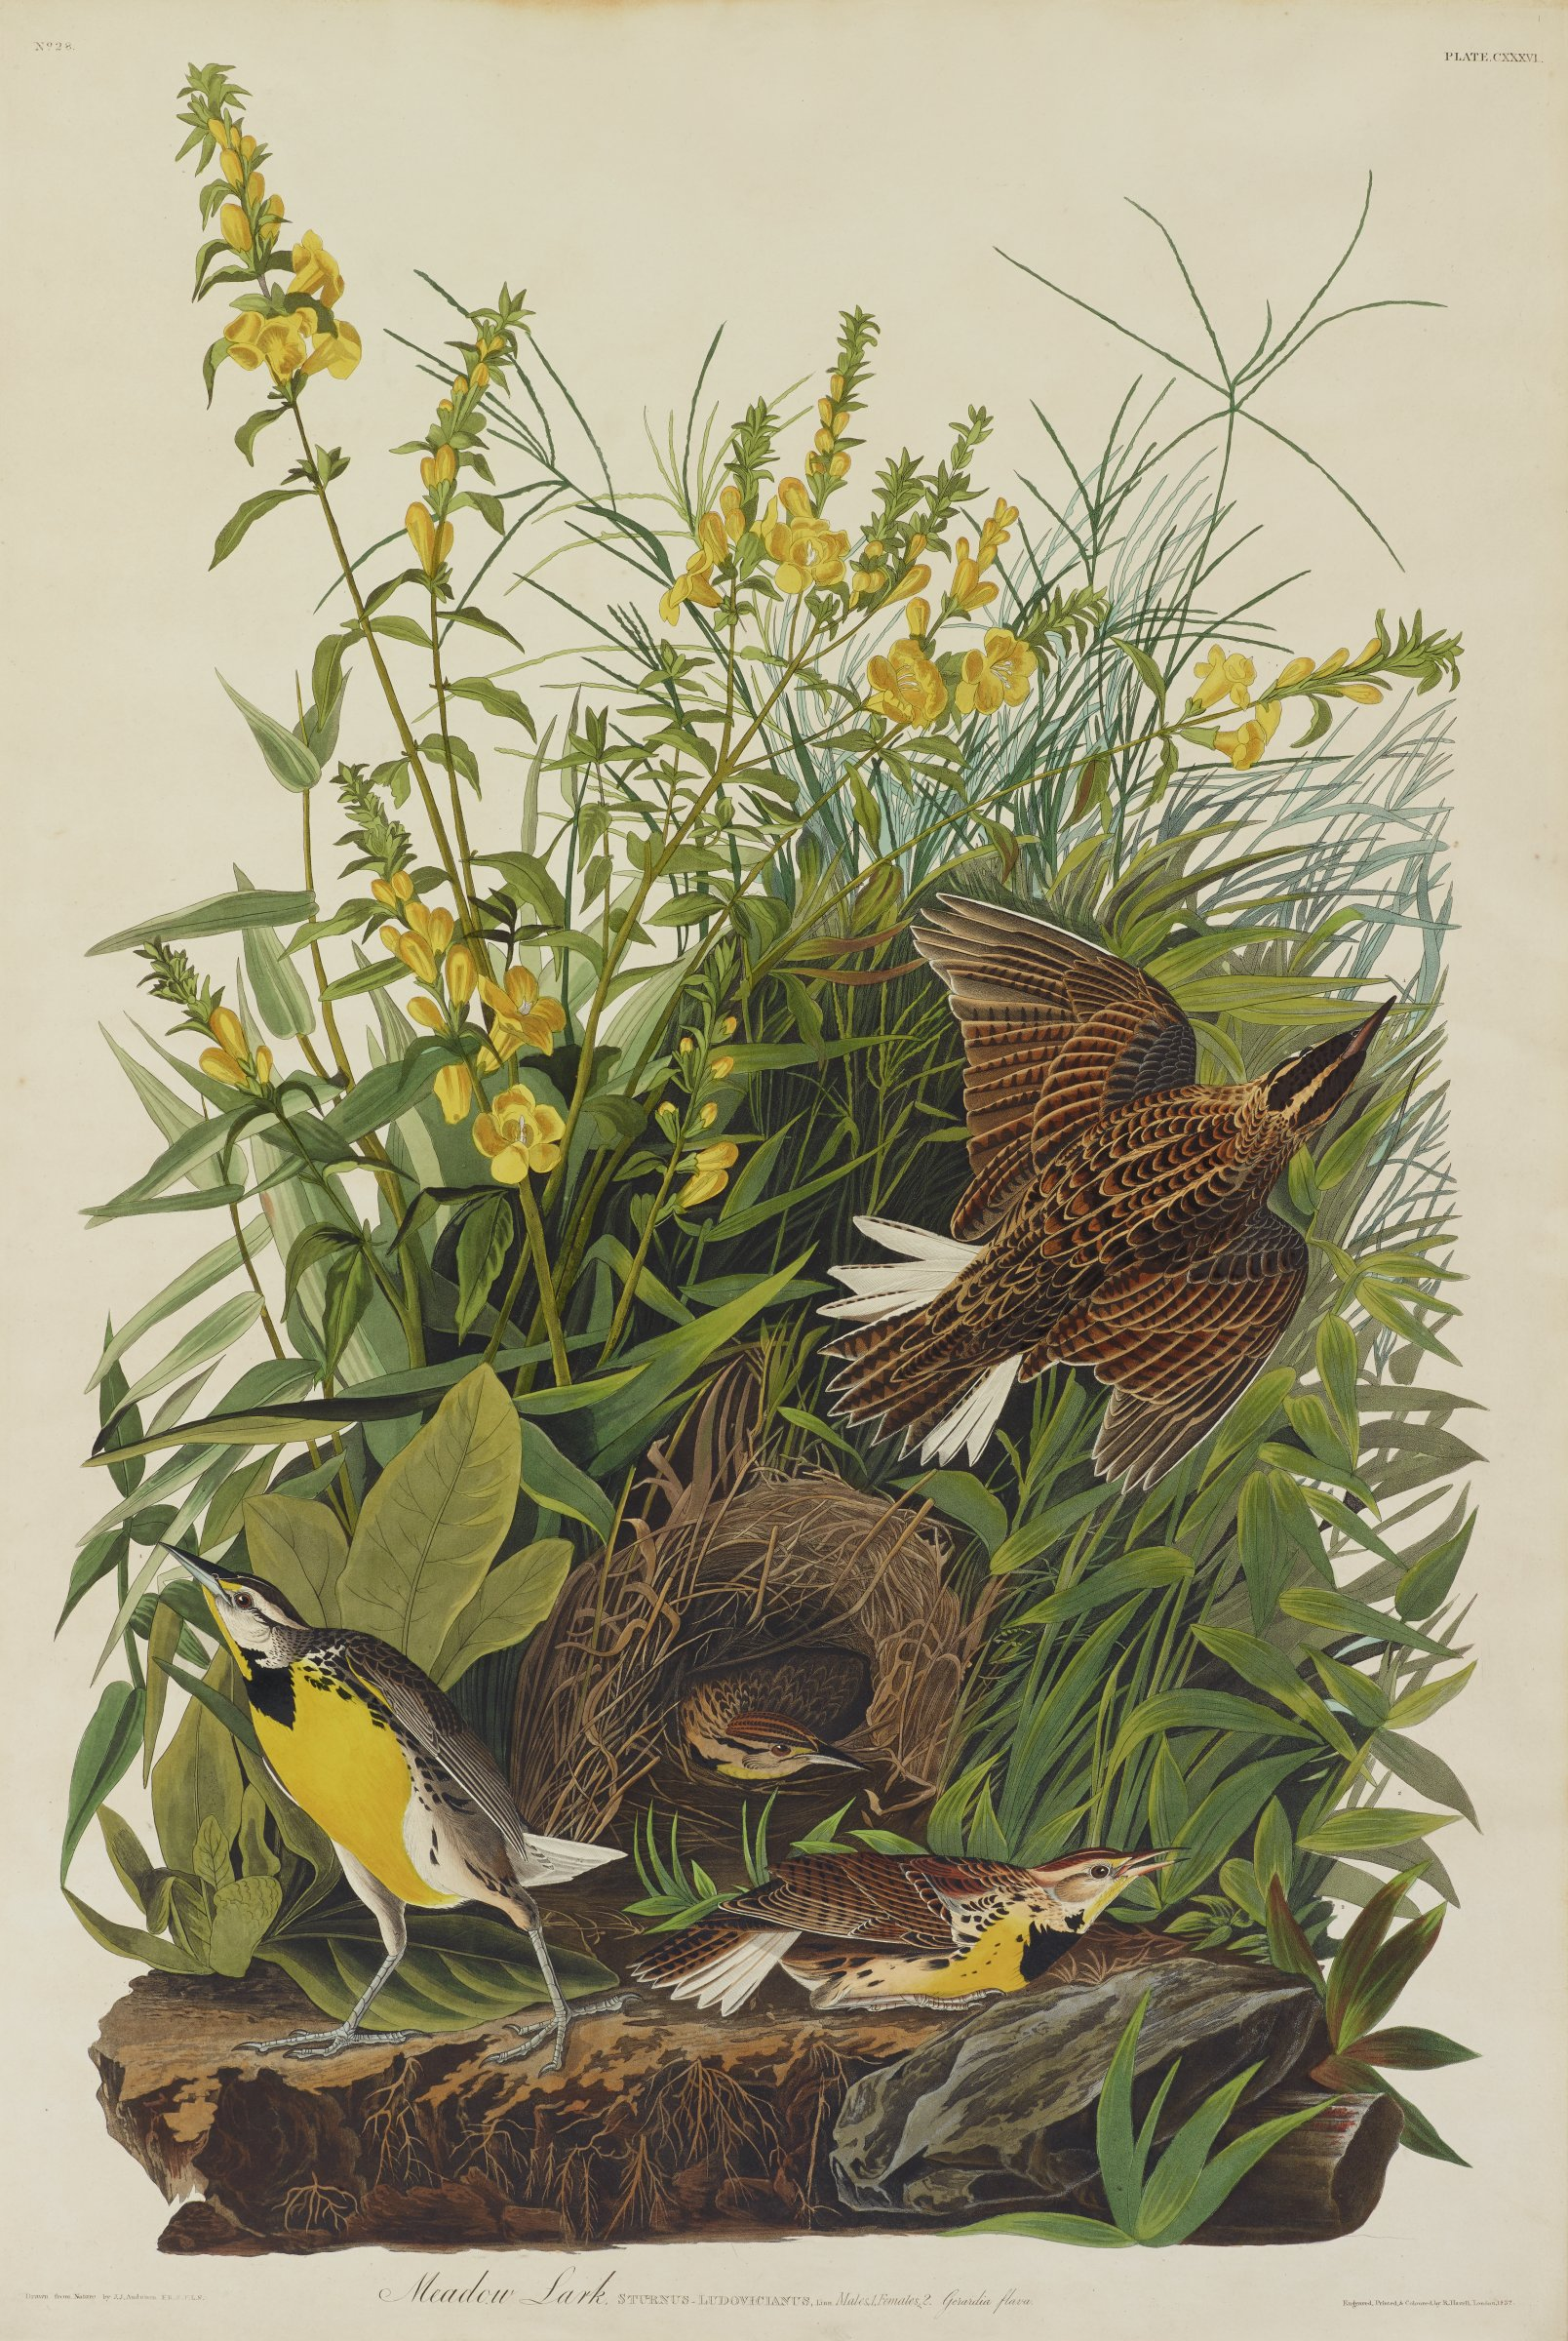 Amongst dense foliage that blooms with tall stalks containing yellow flowers are four birds with brown, black and white topsides and yellow undersides. The four birds are seen in various motions. One is flying upwards, two are on the ground, and one peaks its head out from a nest, which is nestled into the foliage.